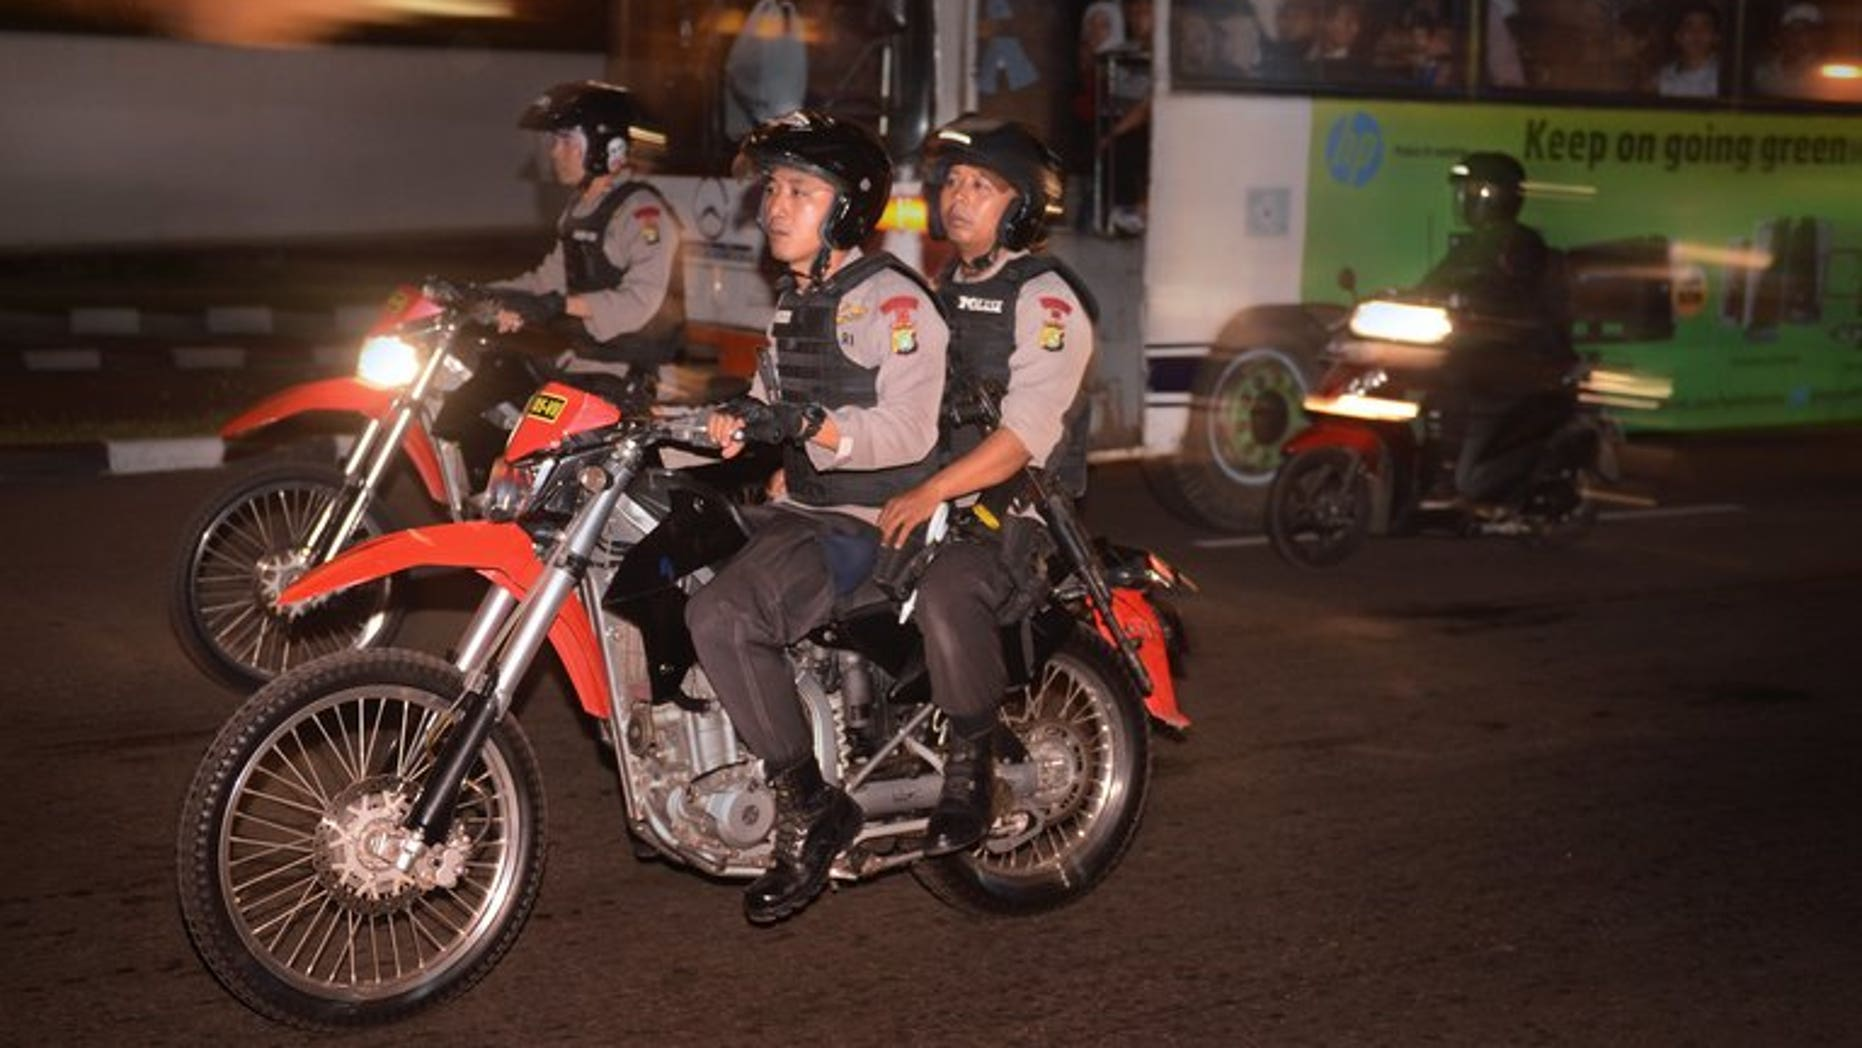 Police officers patrol on motorcycles around the capital city of Jakarta on August 5, 2013. Indonesia's anti-corruption agency has arrested the head of the country's upstream oil and gas regulator over allegations of bribery, an official said Wednesday.